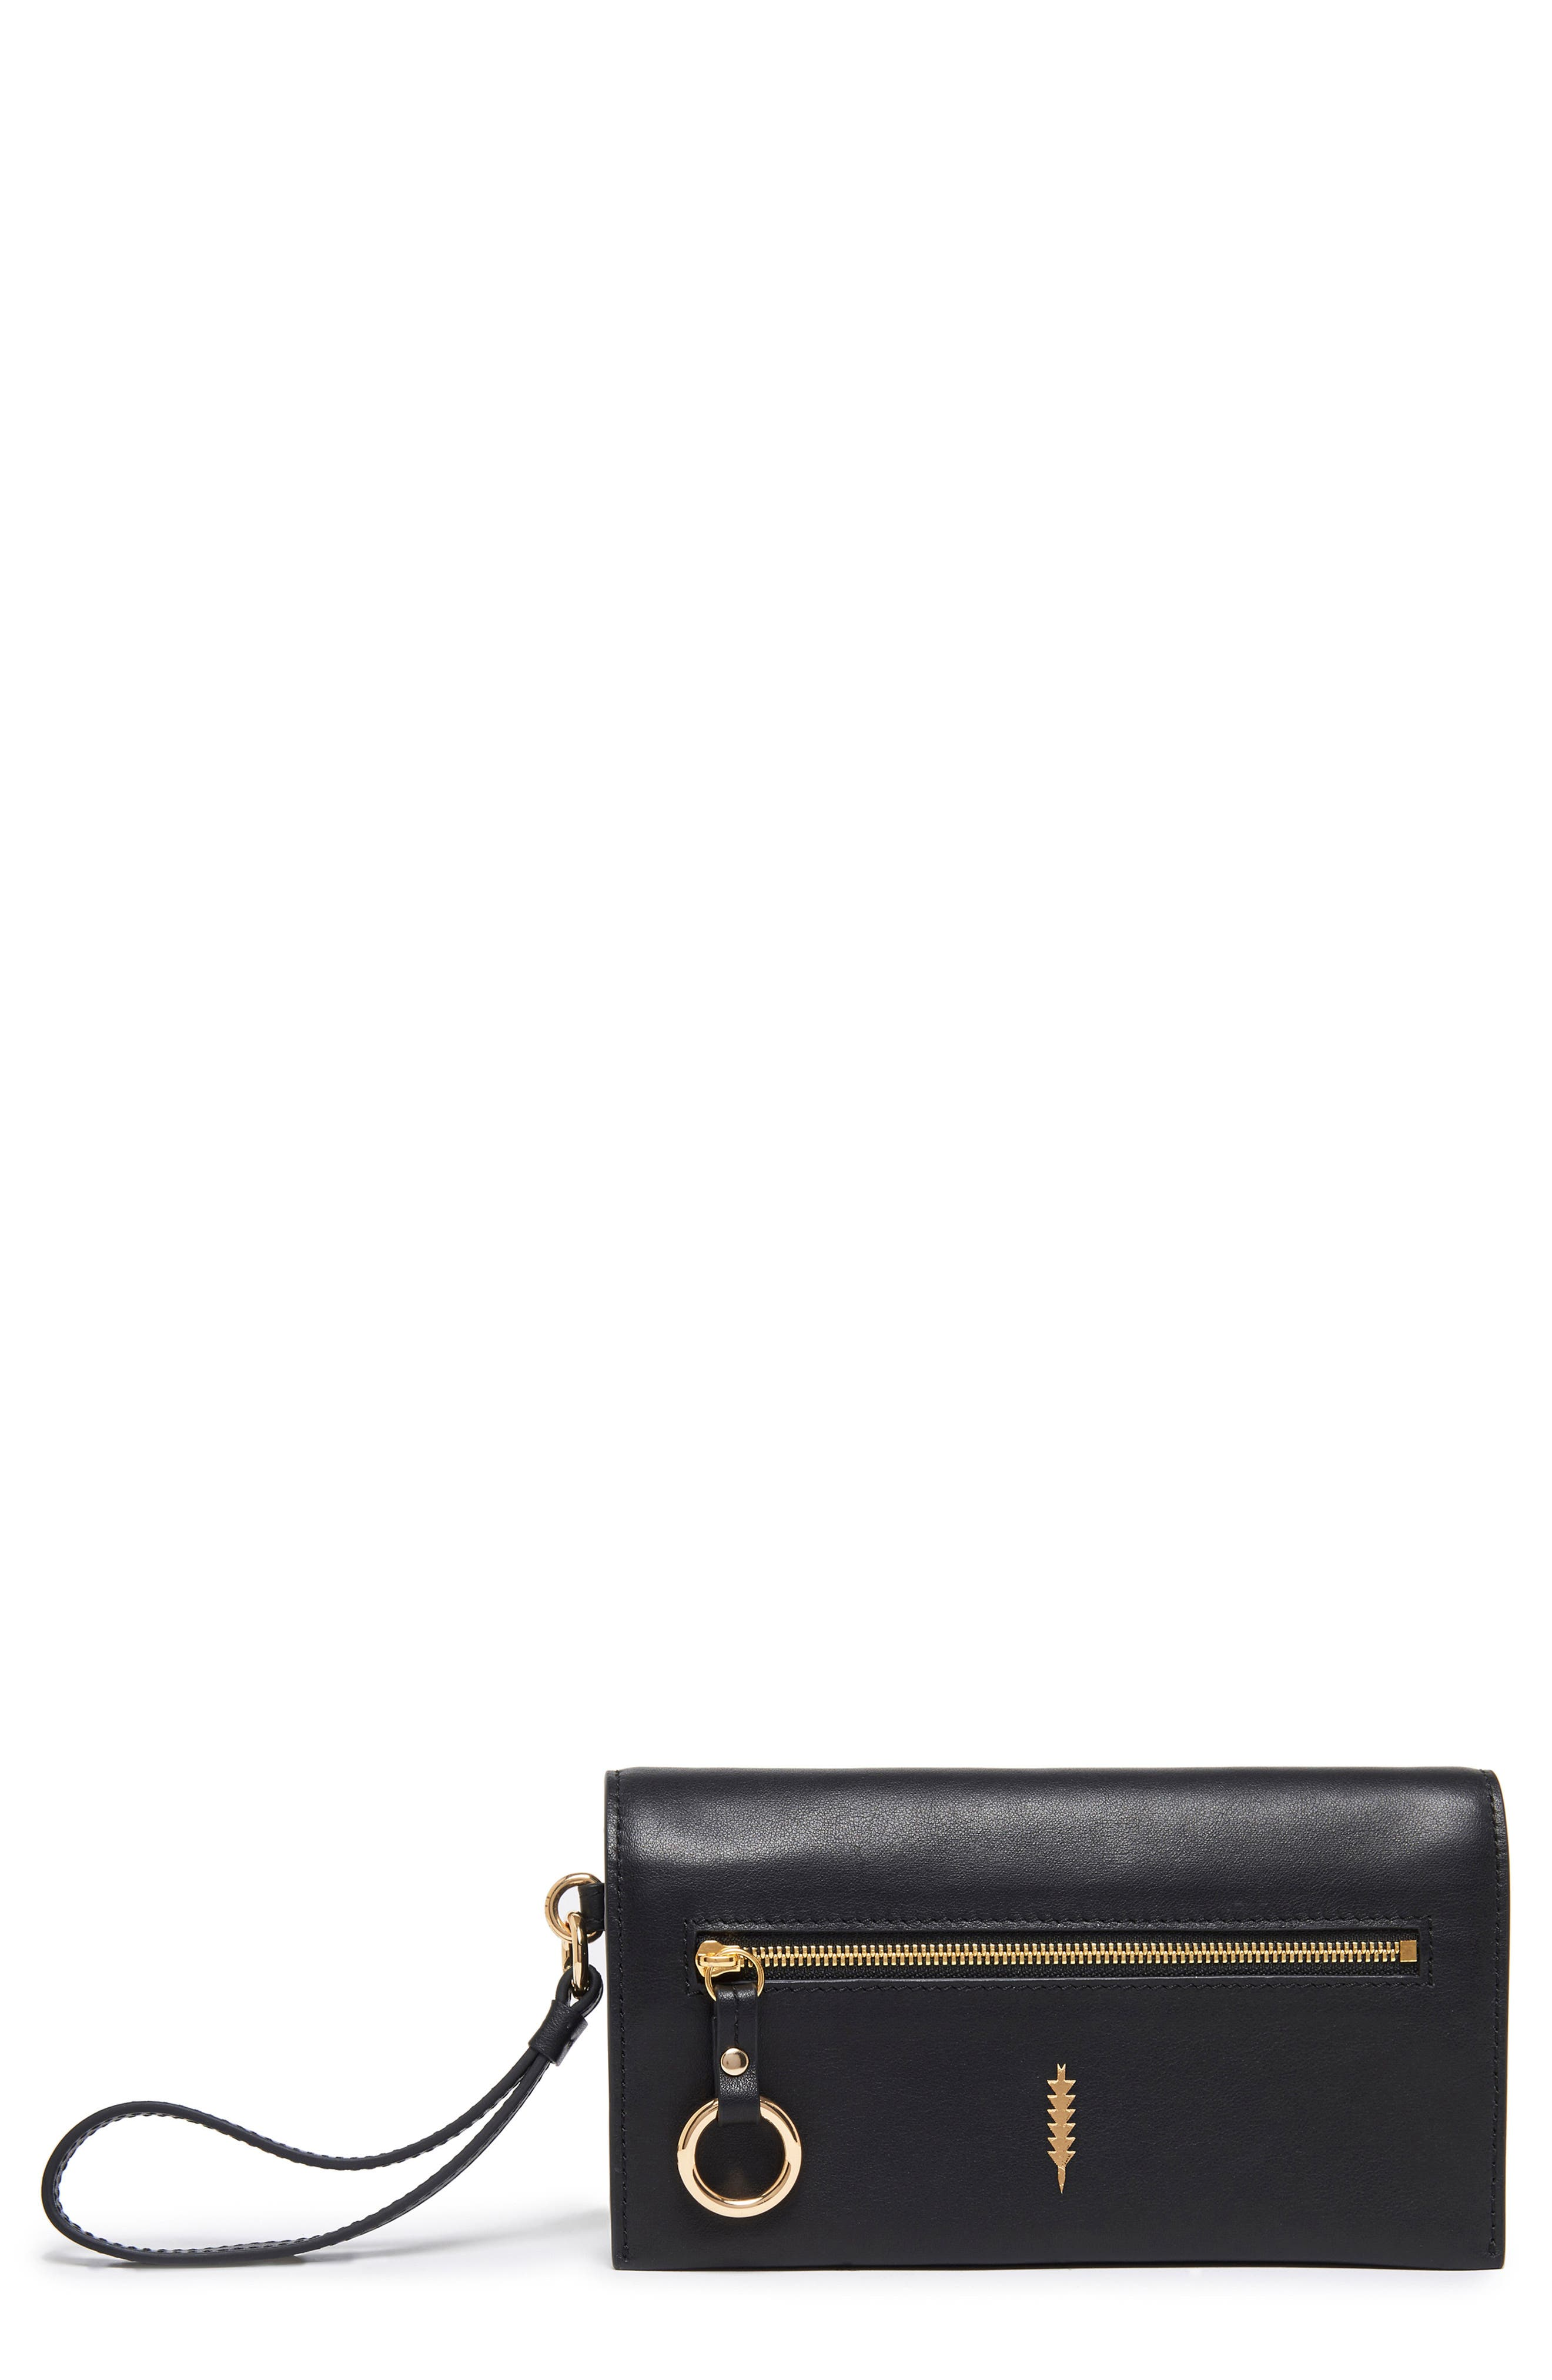 Image of THACKER Eve Leather Crossbody Wallet